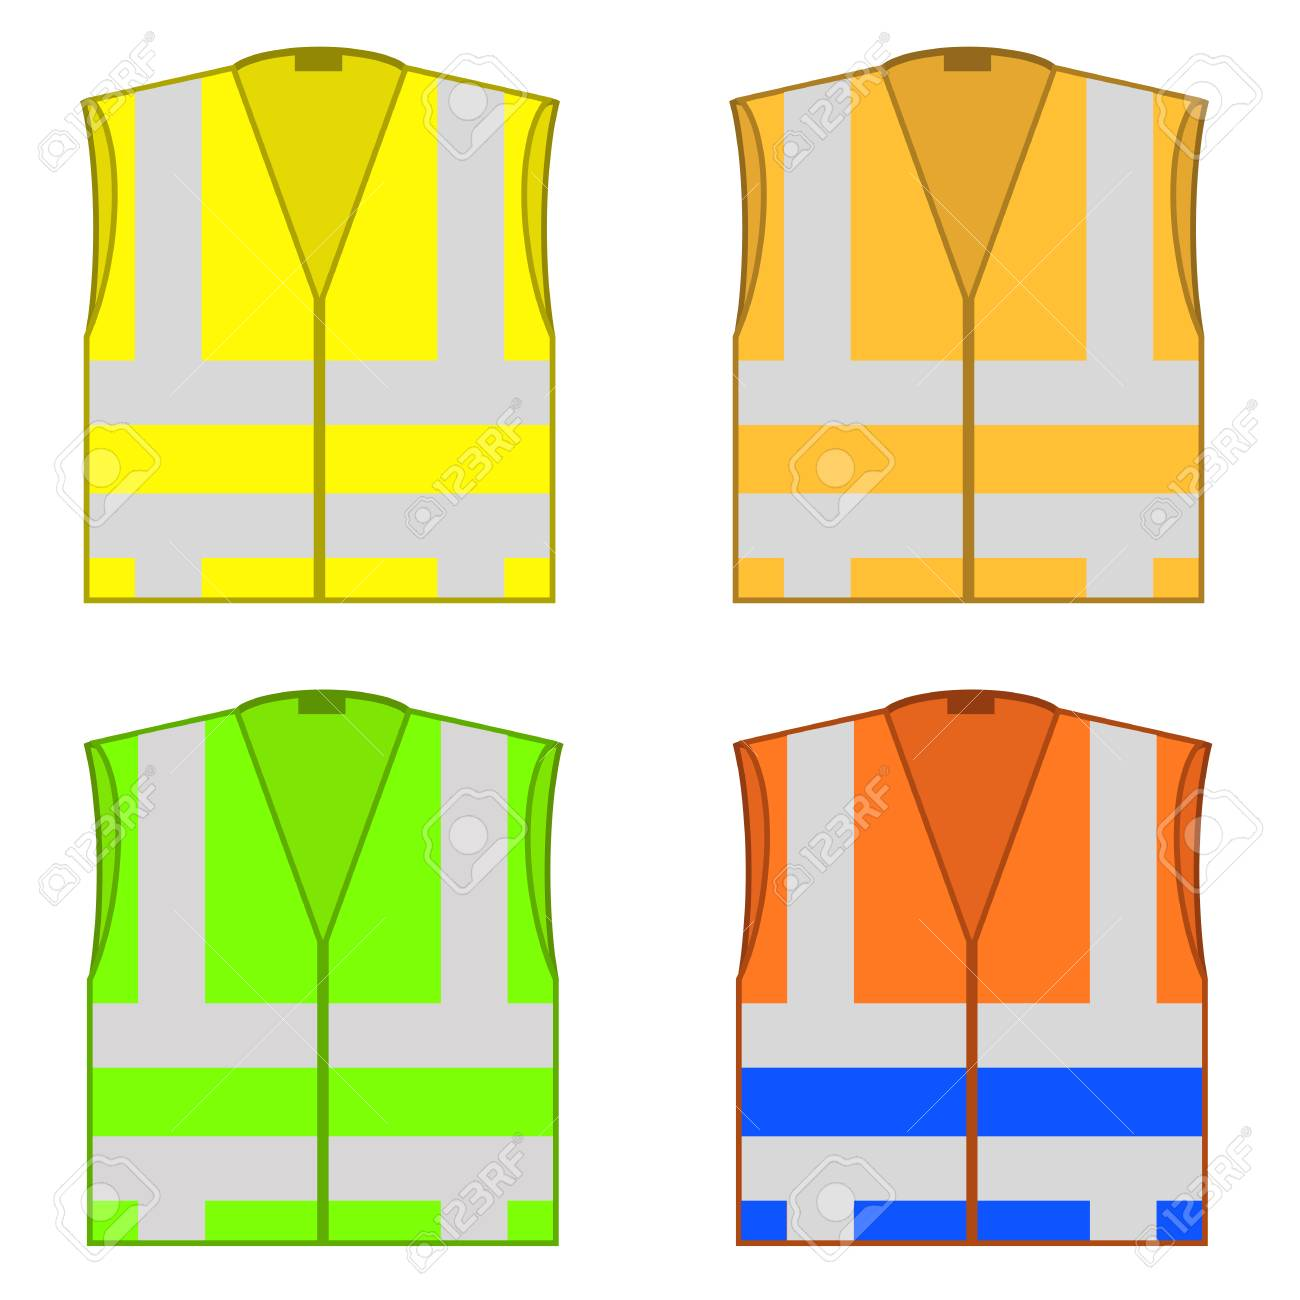 Set of colorful safety jackets isolated on white background. Protective work wear for work, road vests with stripes. Professional high-visibility clothes. - 95889175